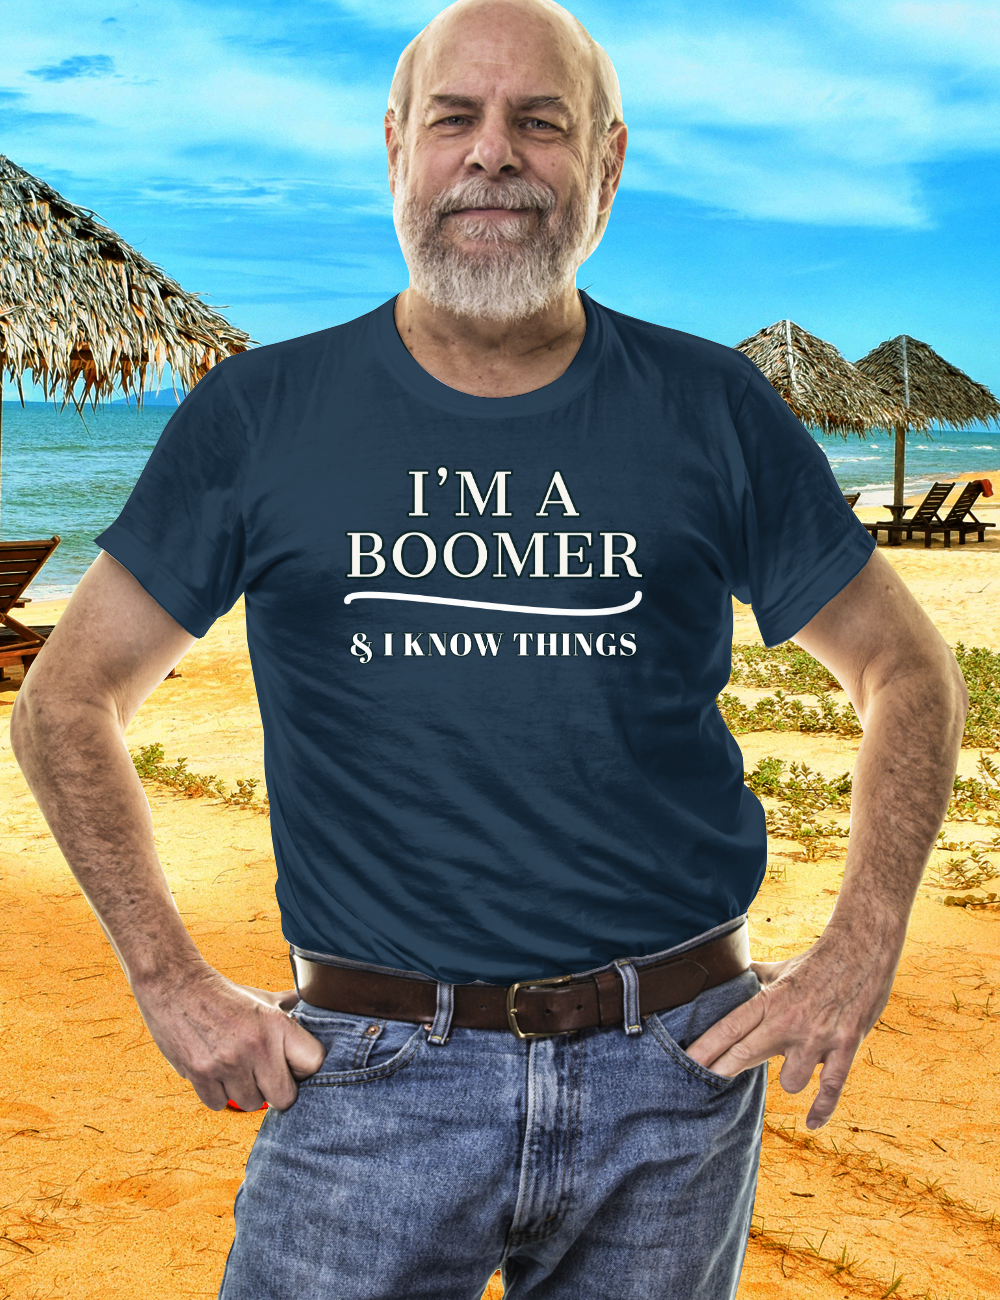 Boomer Shirt I'M A BOOMER & I KNOW THINGS